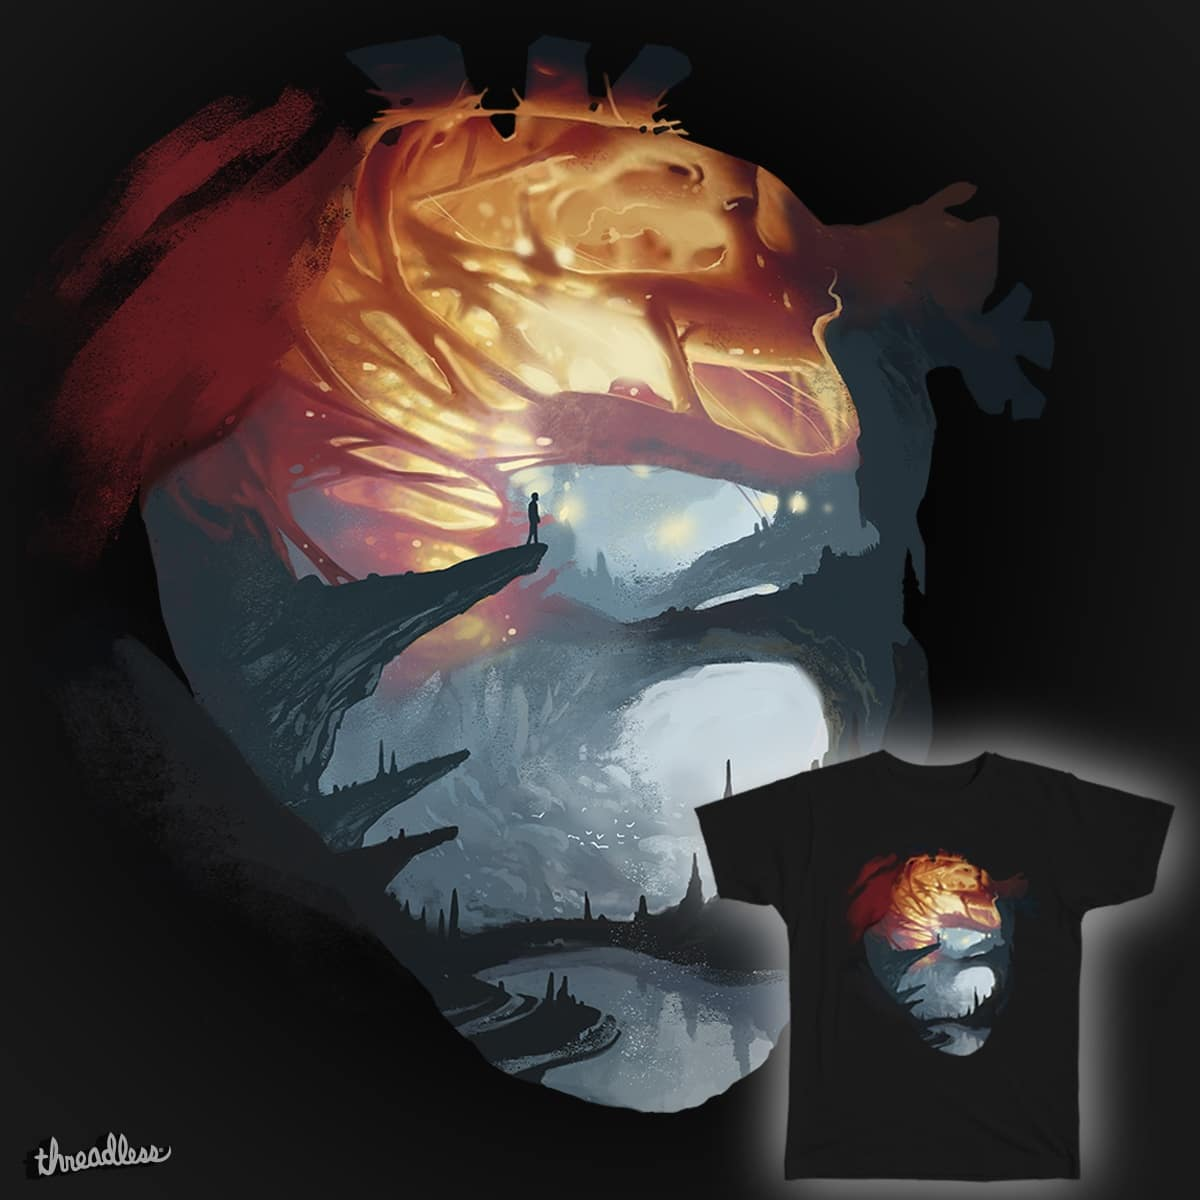 Searching for Love by Yak Love on Threadless